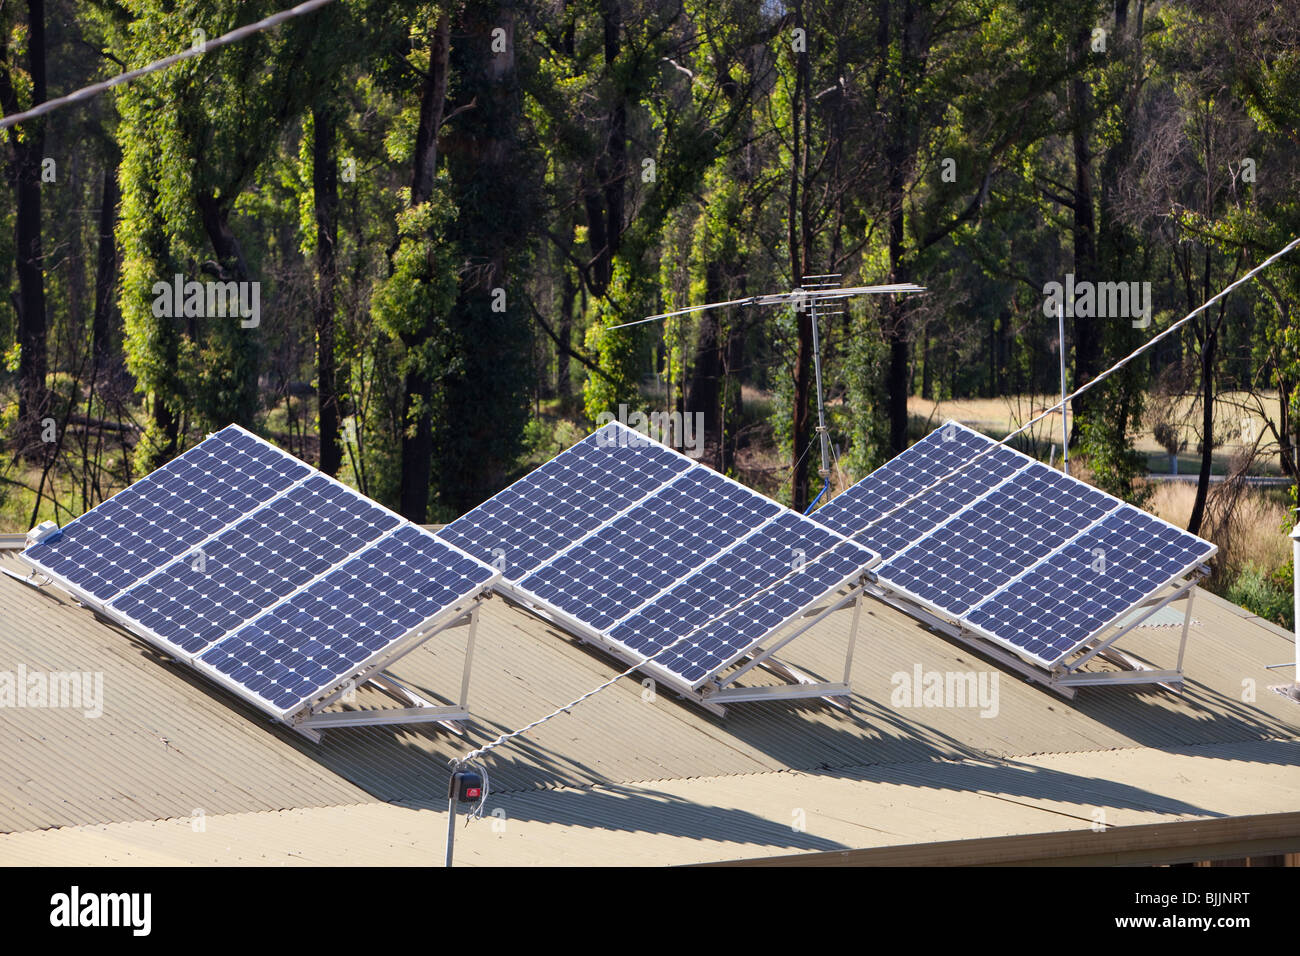 Solar panels on a house roof in Kinglake, Victoria, Australia. - Stock Image